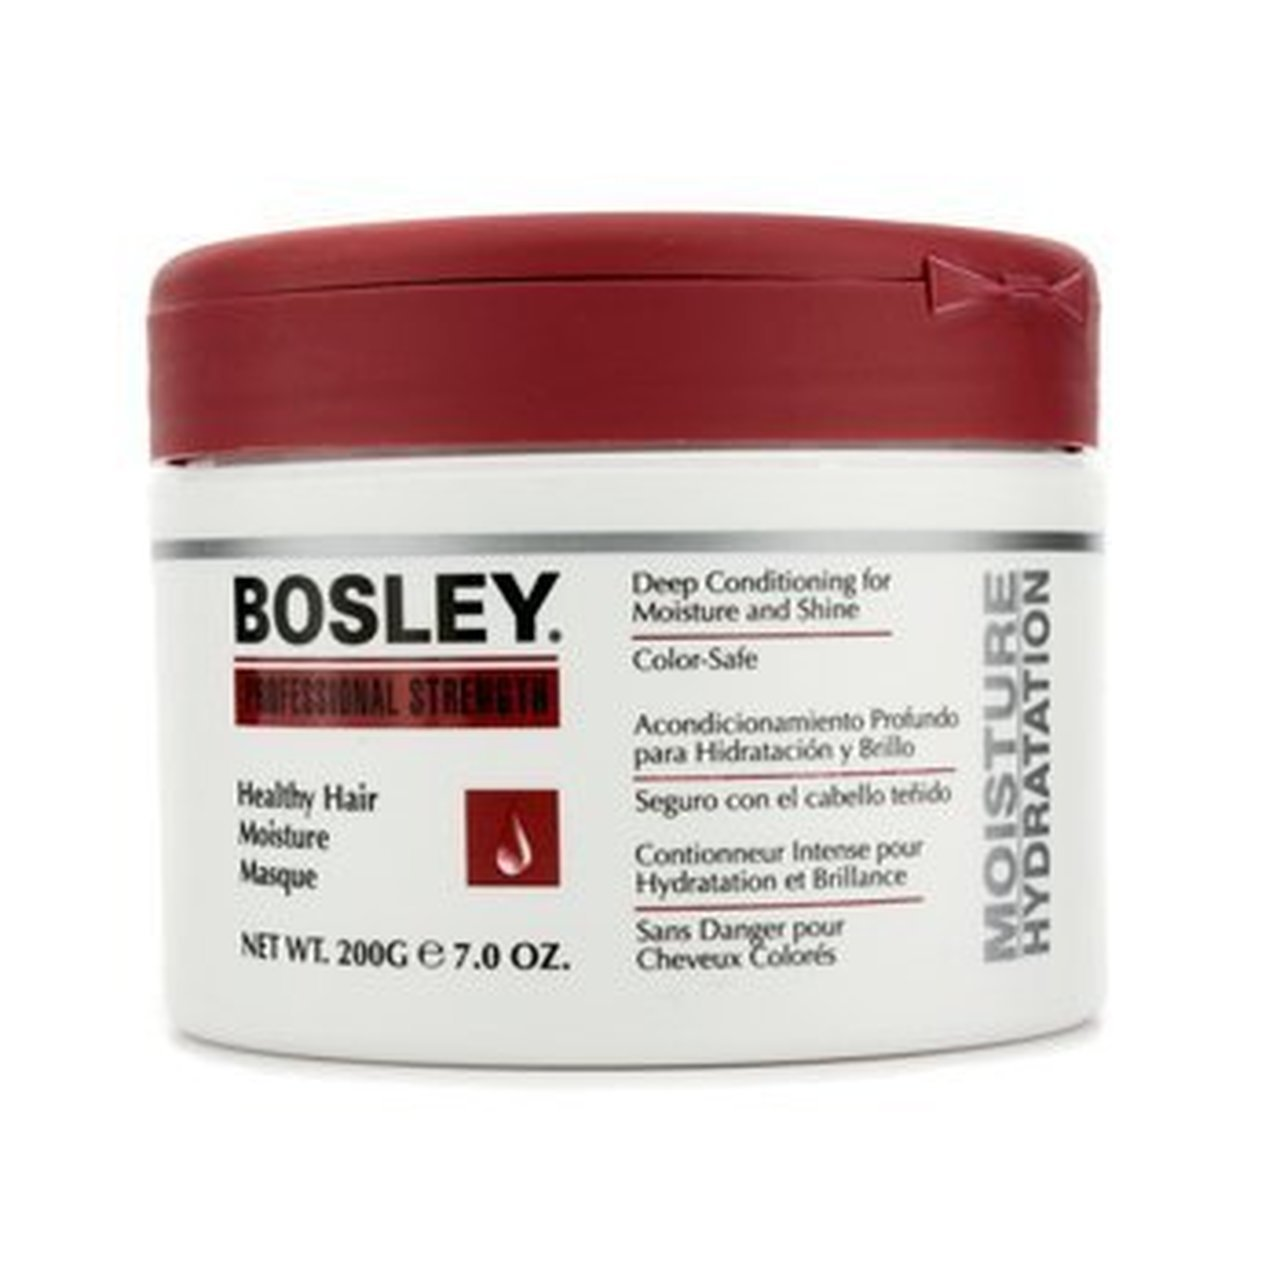 Primary image for Bosley Professional Healthy Hair Moisture Masque 7oz